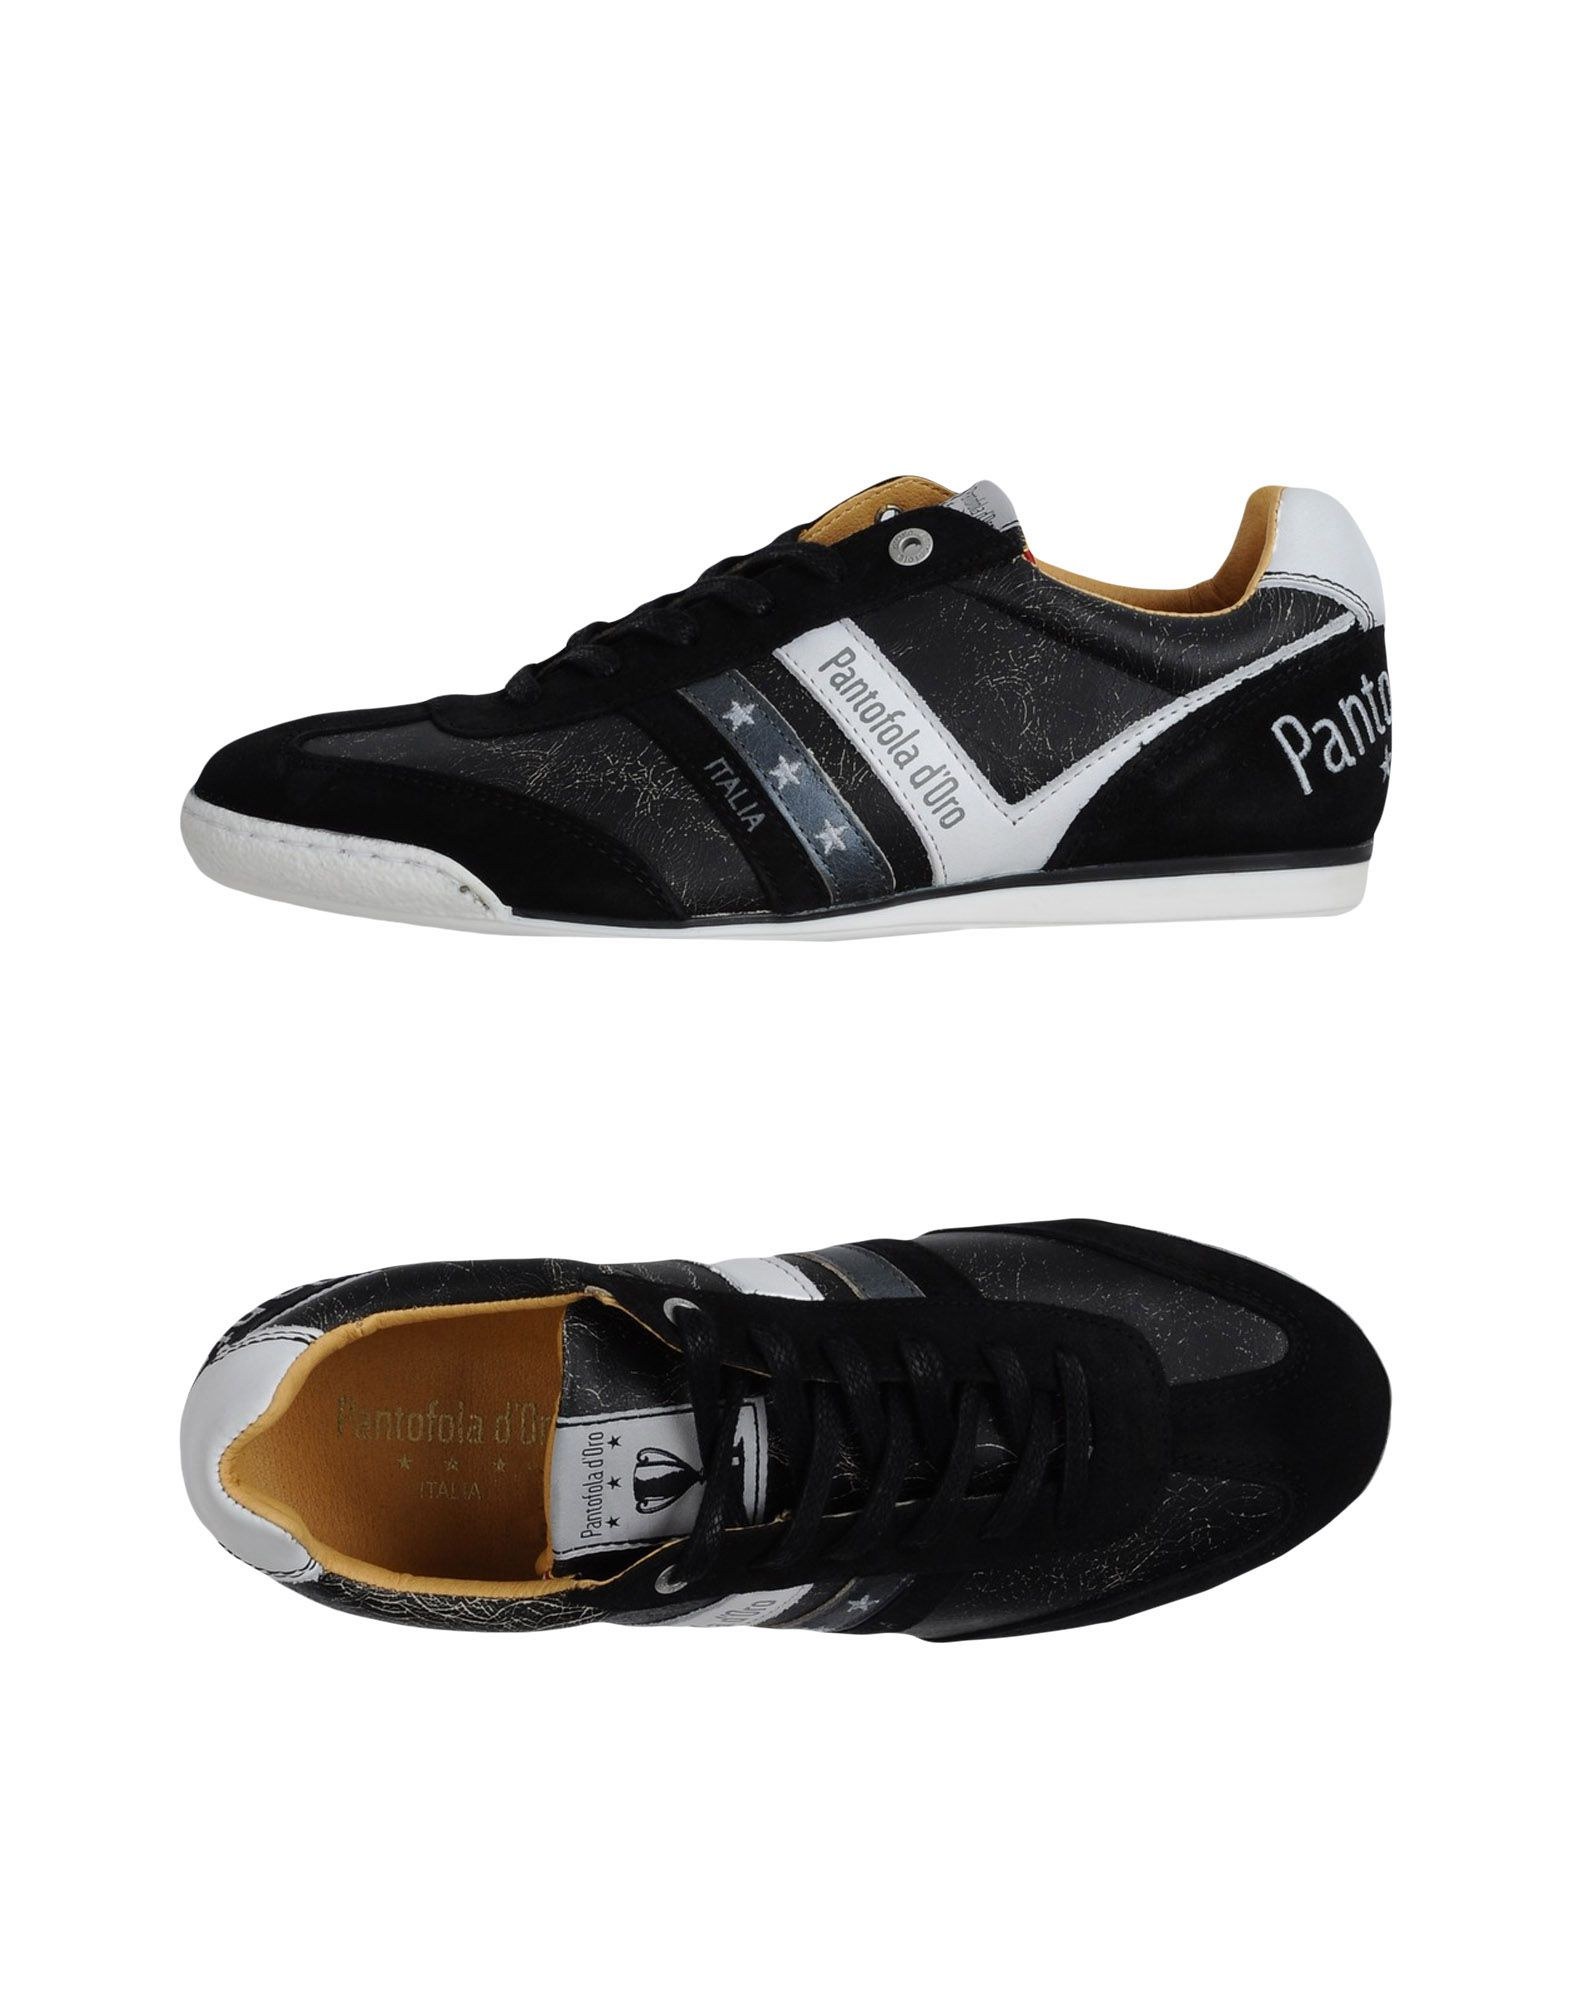 Pantofola D'oro D'oro Sneakers - Men Pantofola D'oro D'oro Sneakers online on  United Kingdom - 11338776WQ a7b239